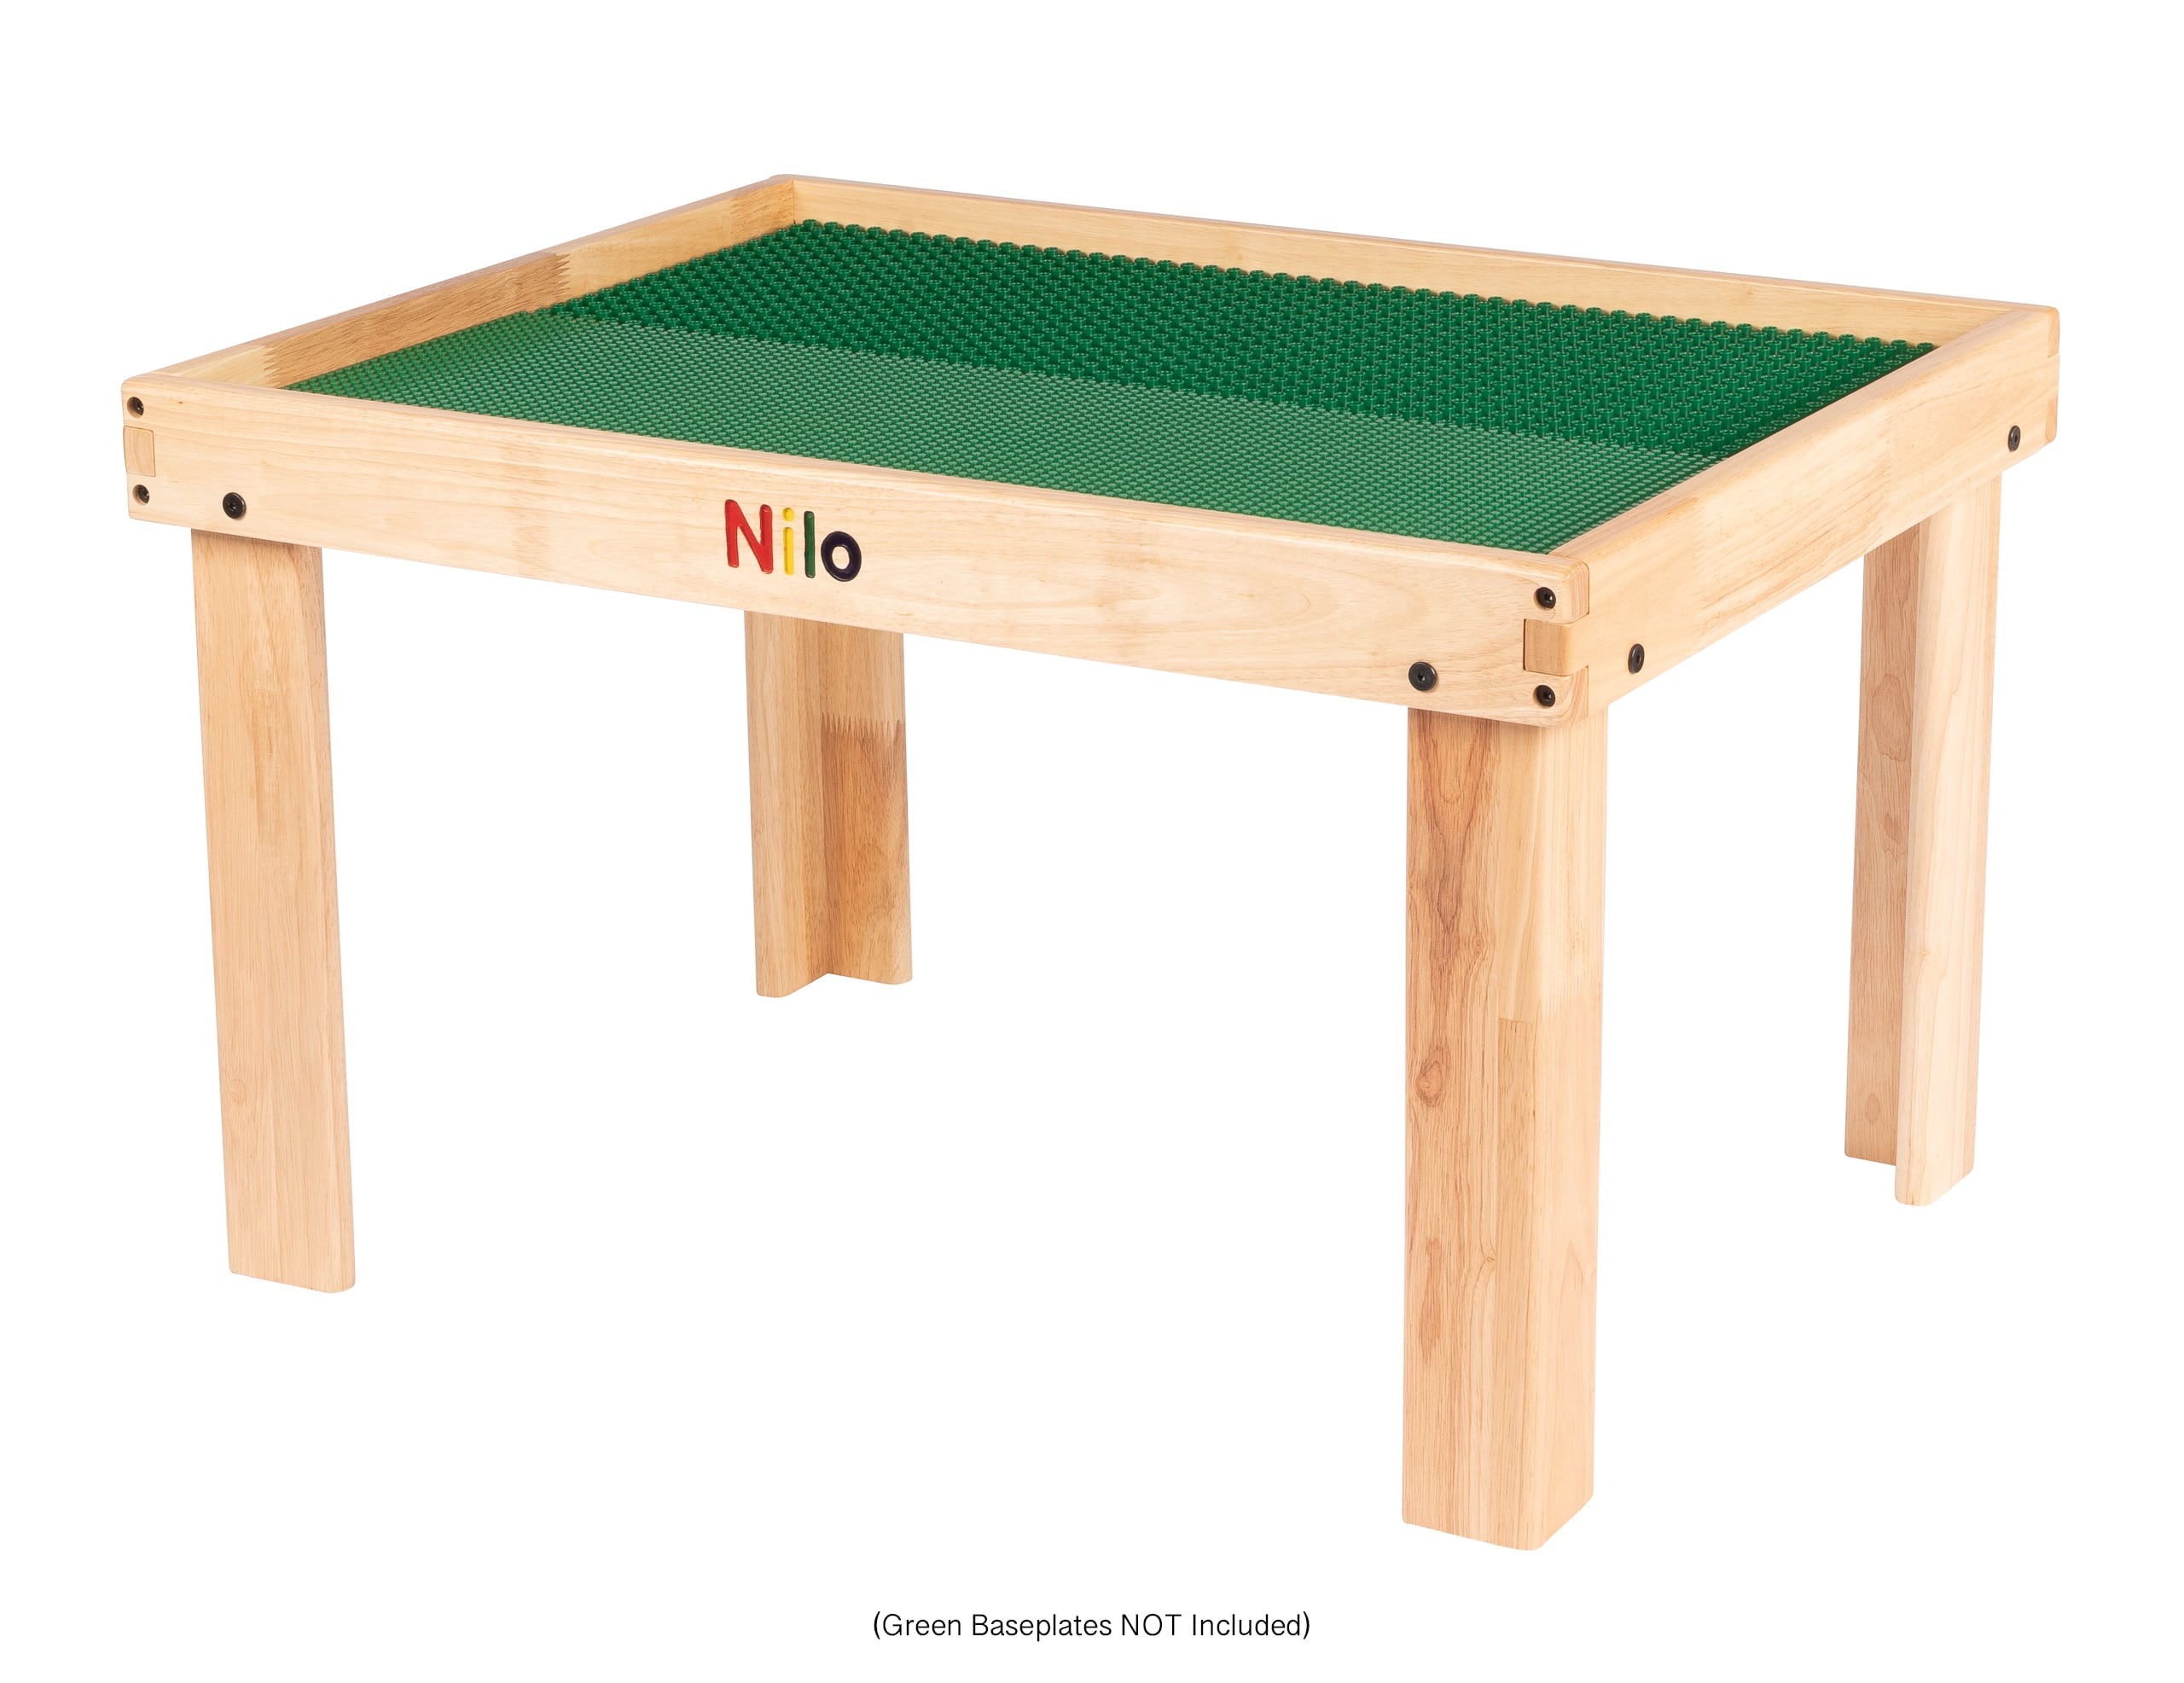 Small Activity Table showing green baseplates